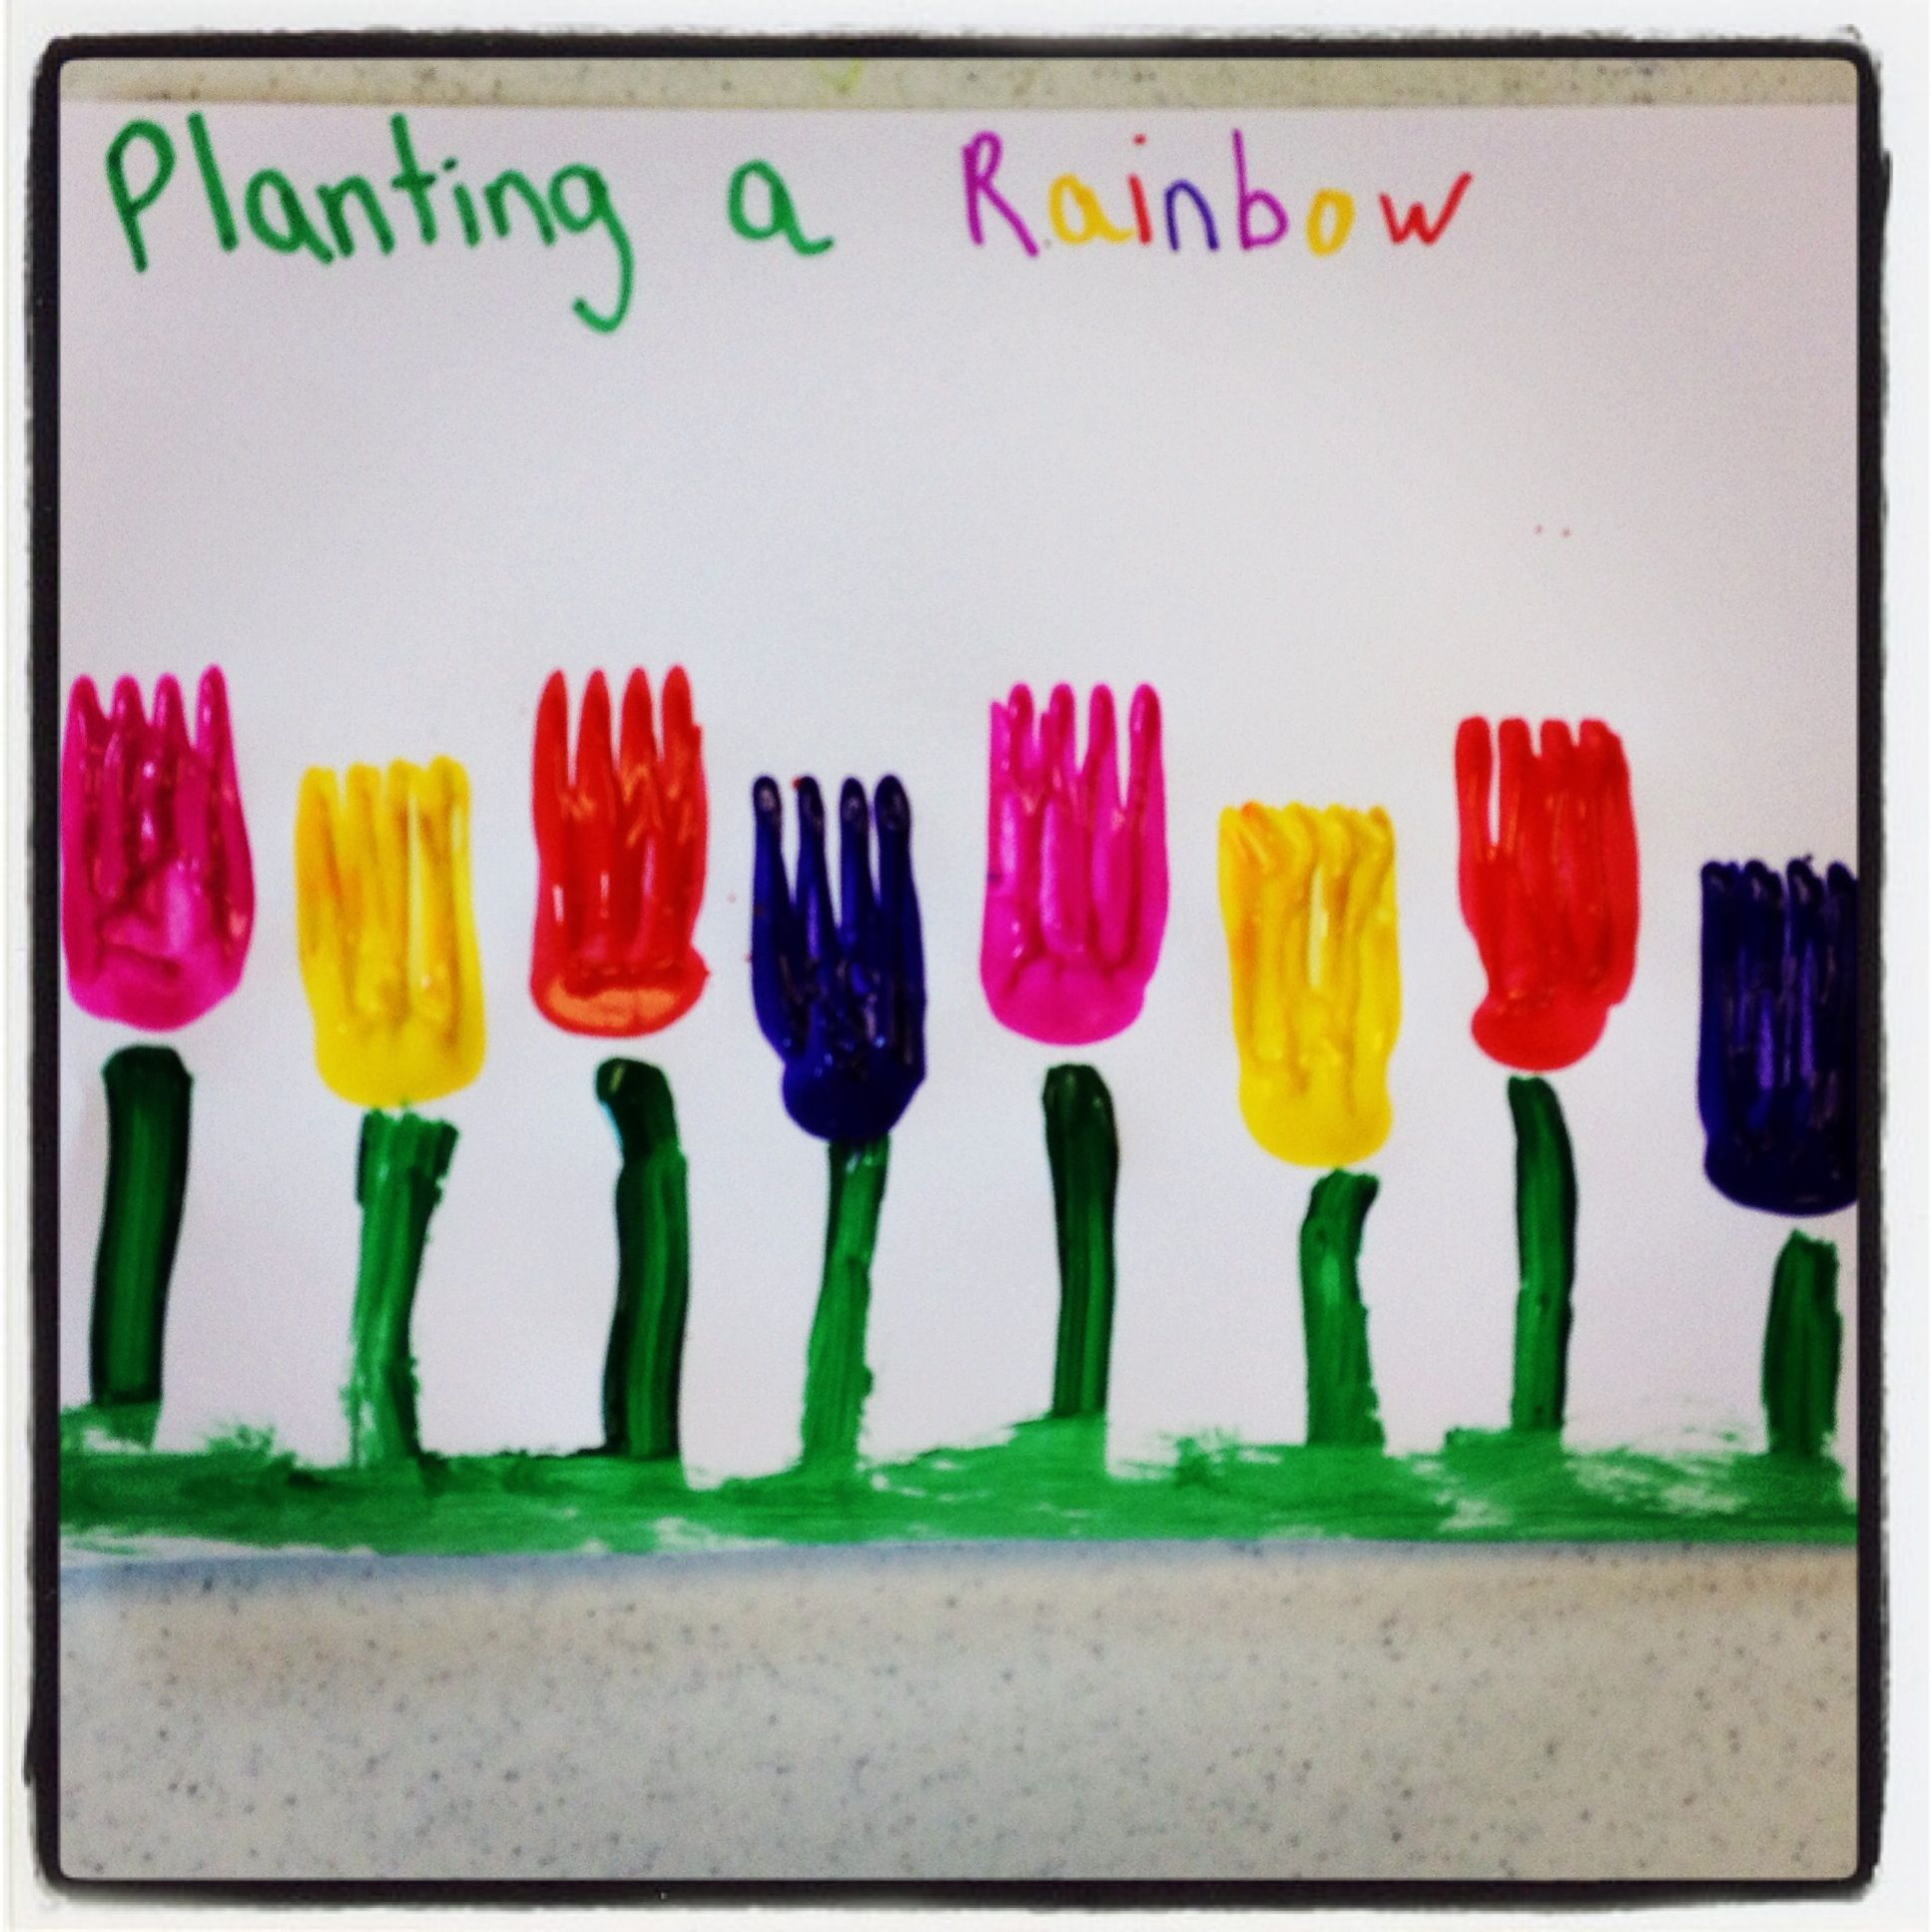 Planting A Rainbow With Forks